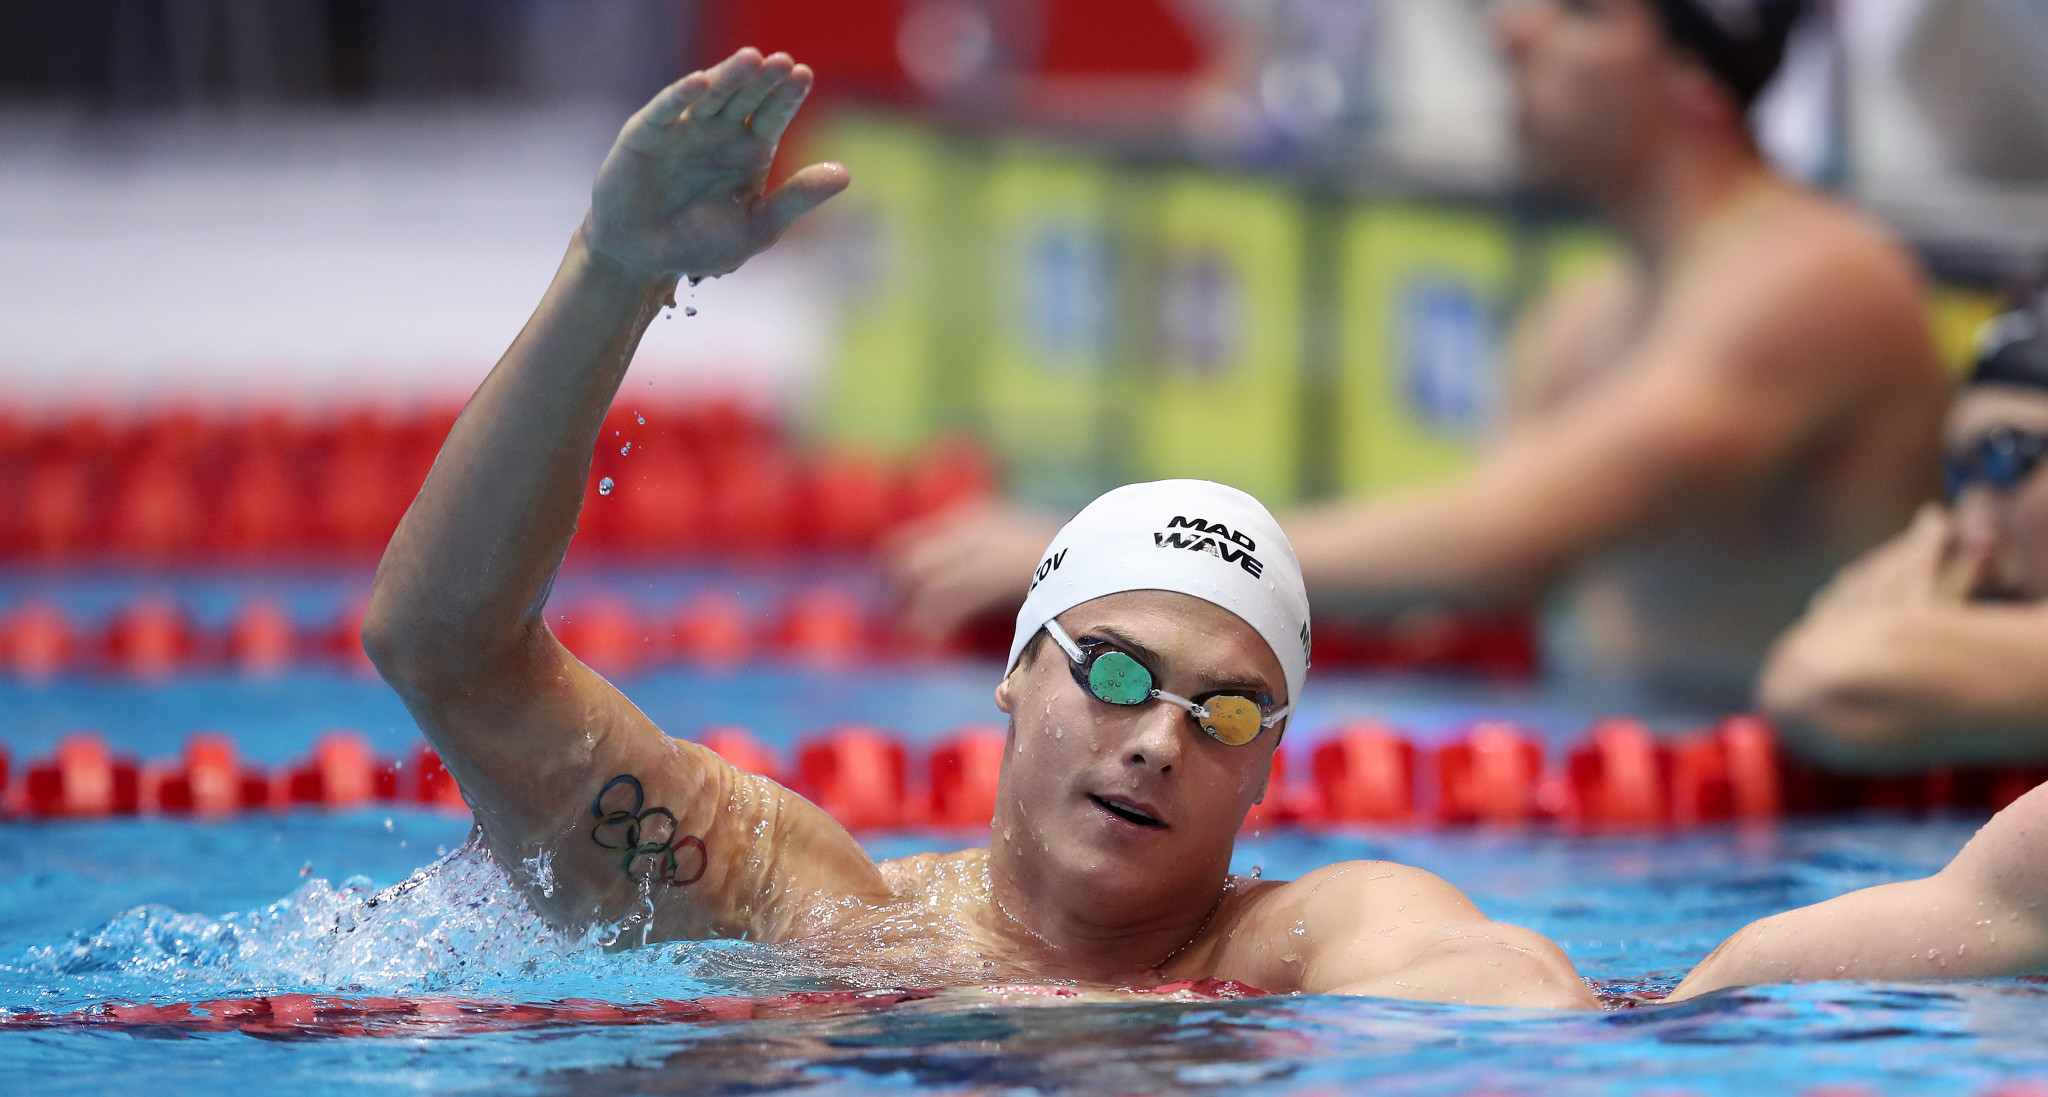 Morozov shines again with two more wins at FINA World Cup